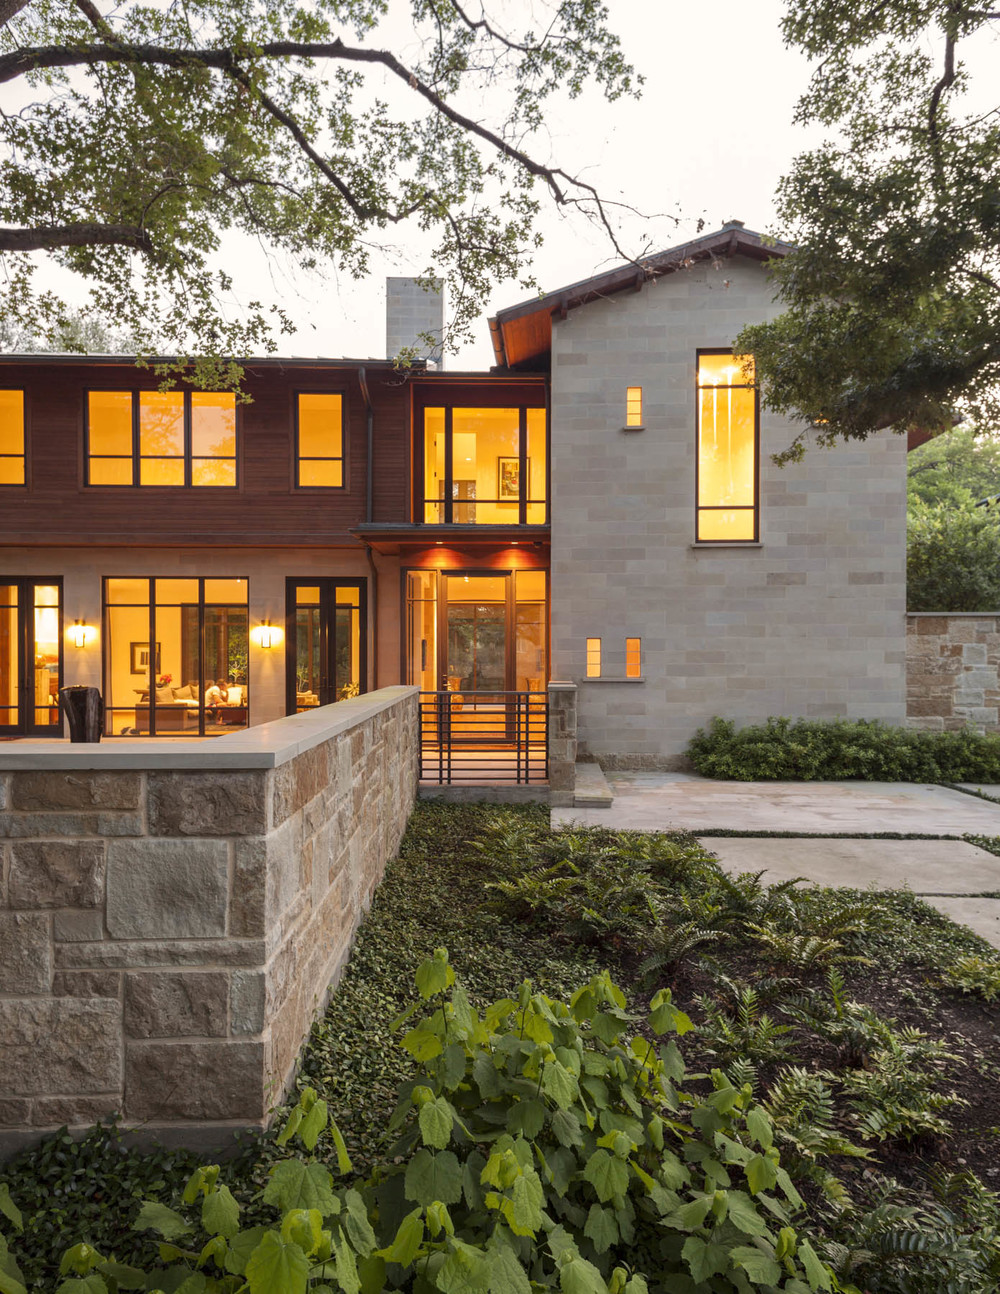 Sunnybrook south shm architects for Contemporary houses in dallas for sale